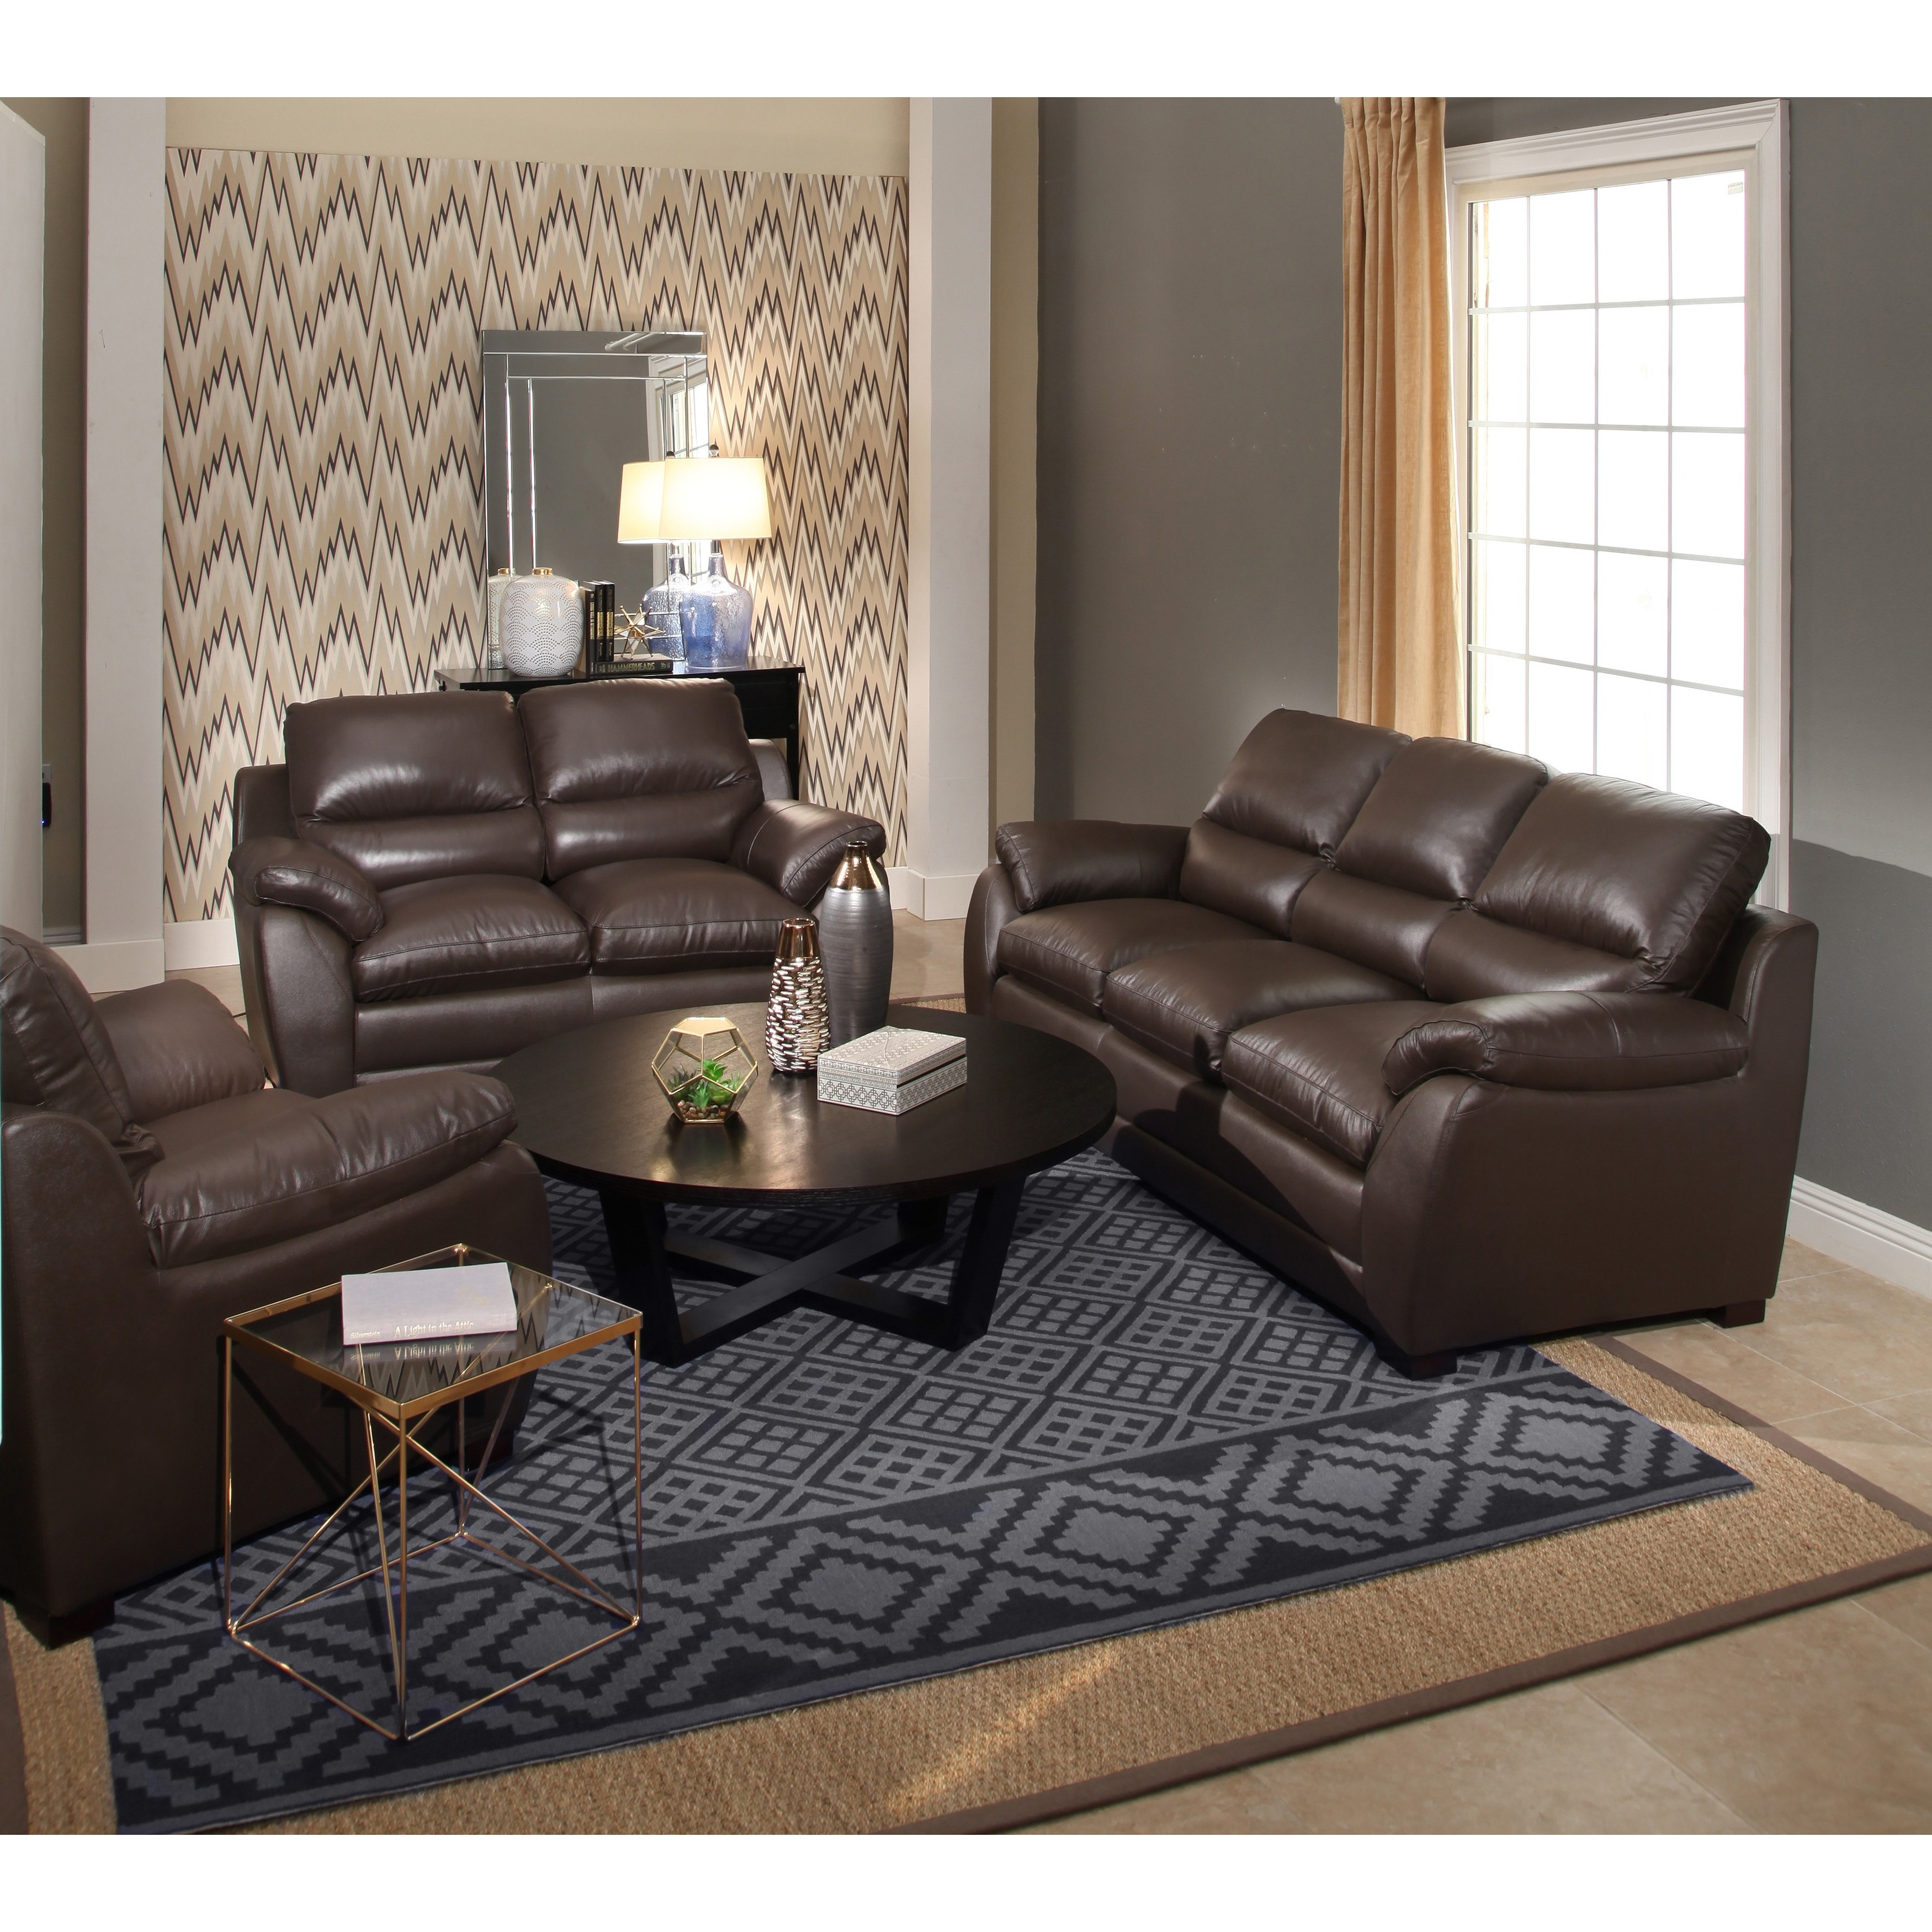 couch set lin free recliner lm room reclining and loveseat living brown includes dark motion sofa